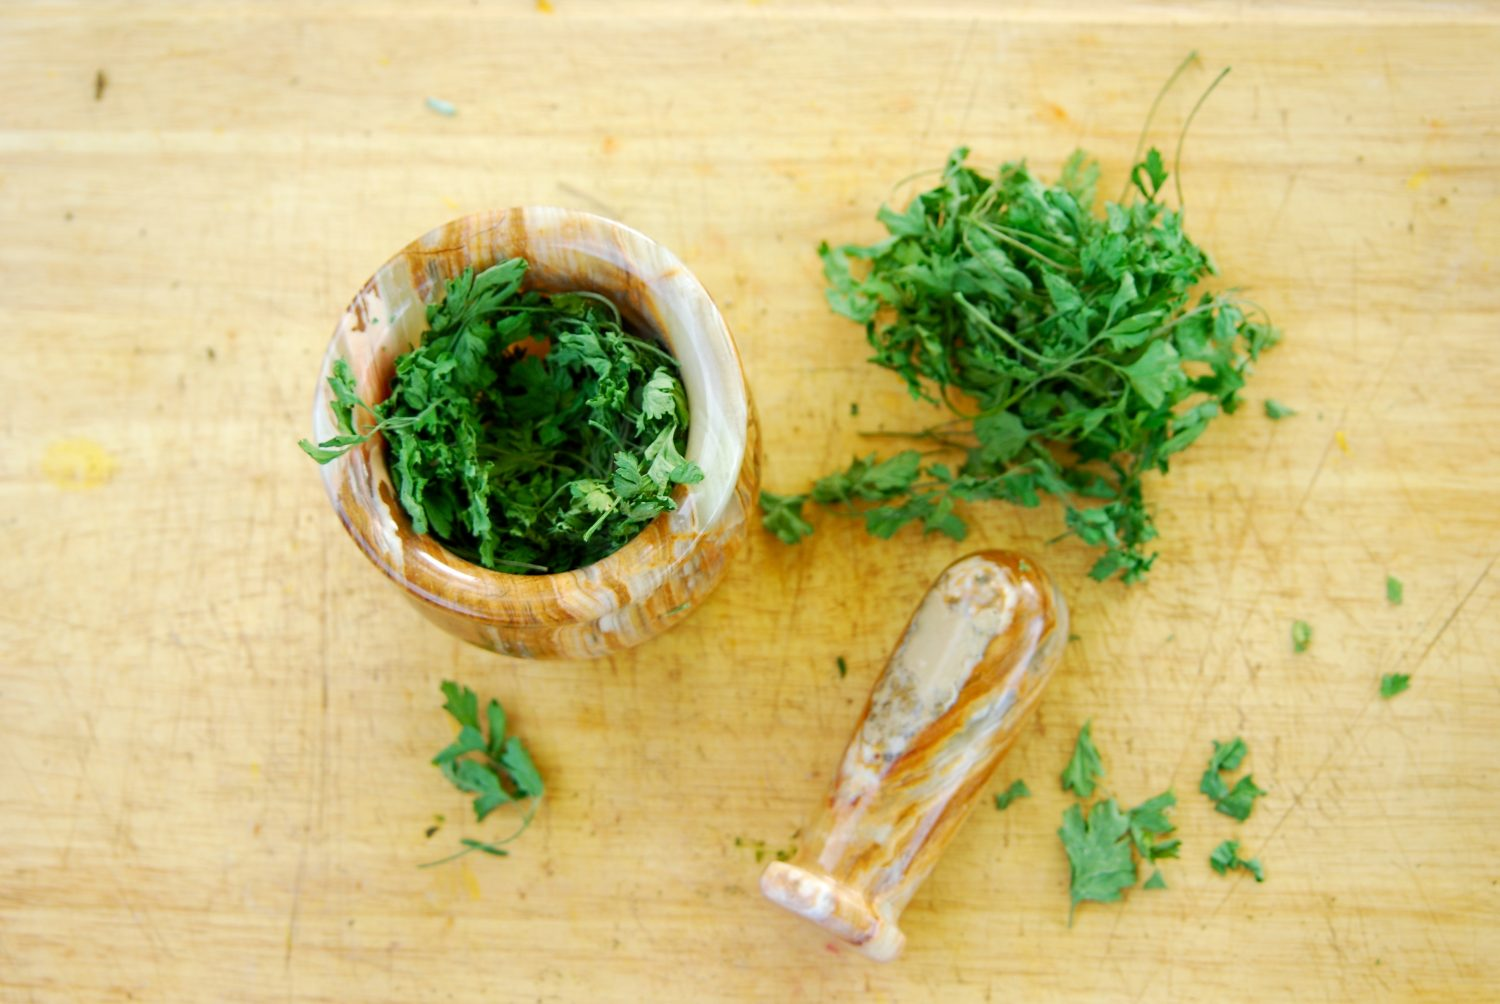 Top down view of dried parsley next to and inside of a mortar and pestle.